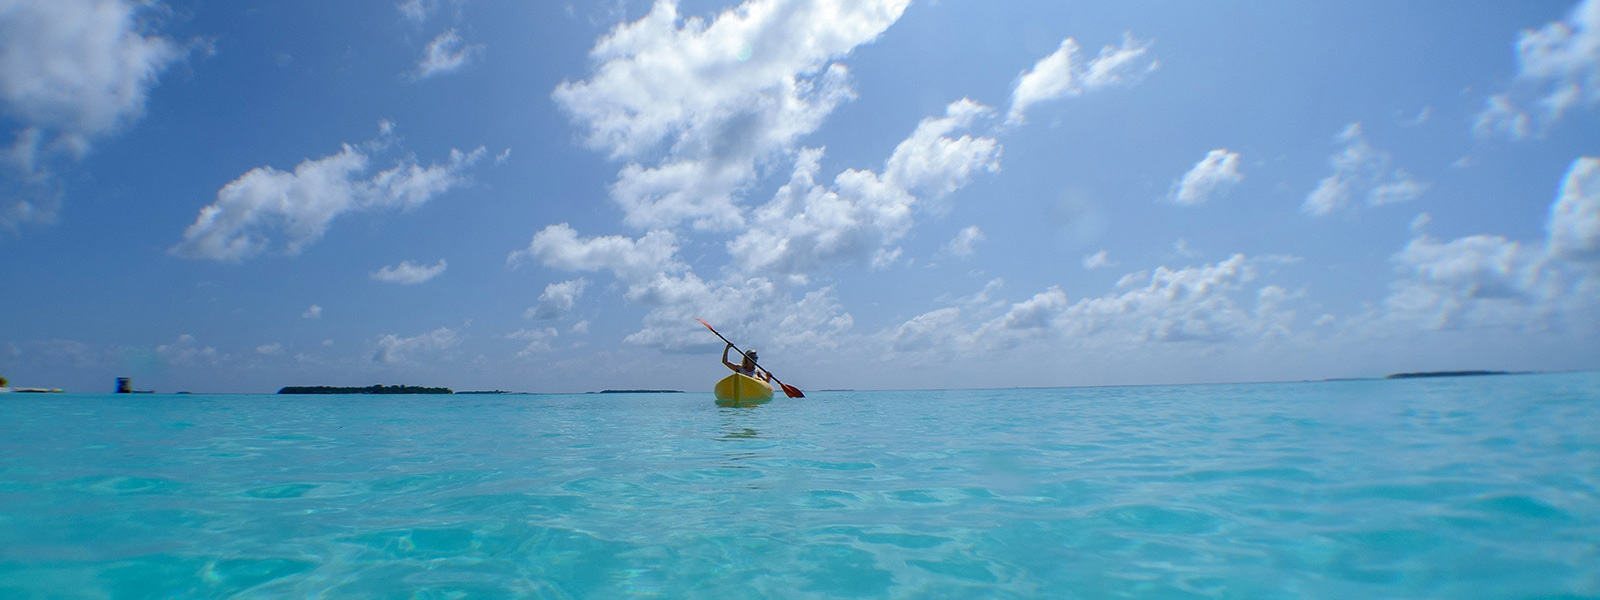 Maldives Water Sports Kayak